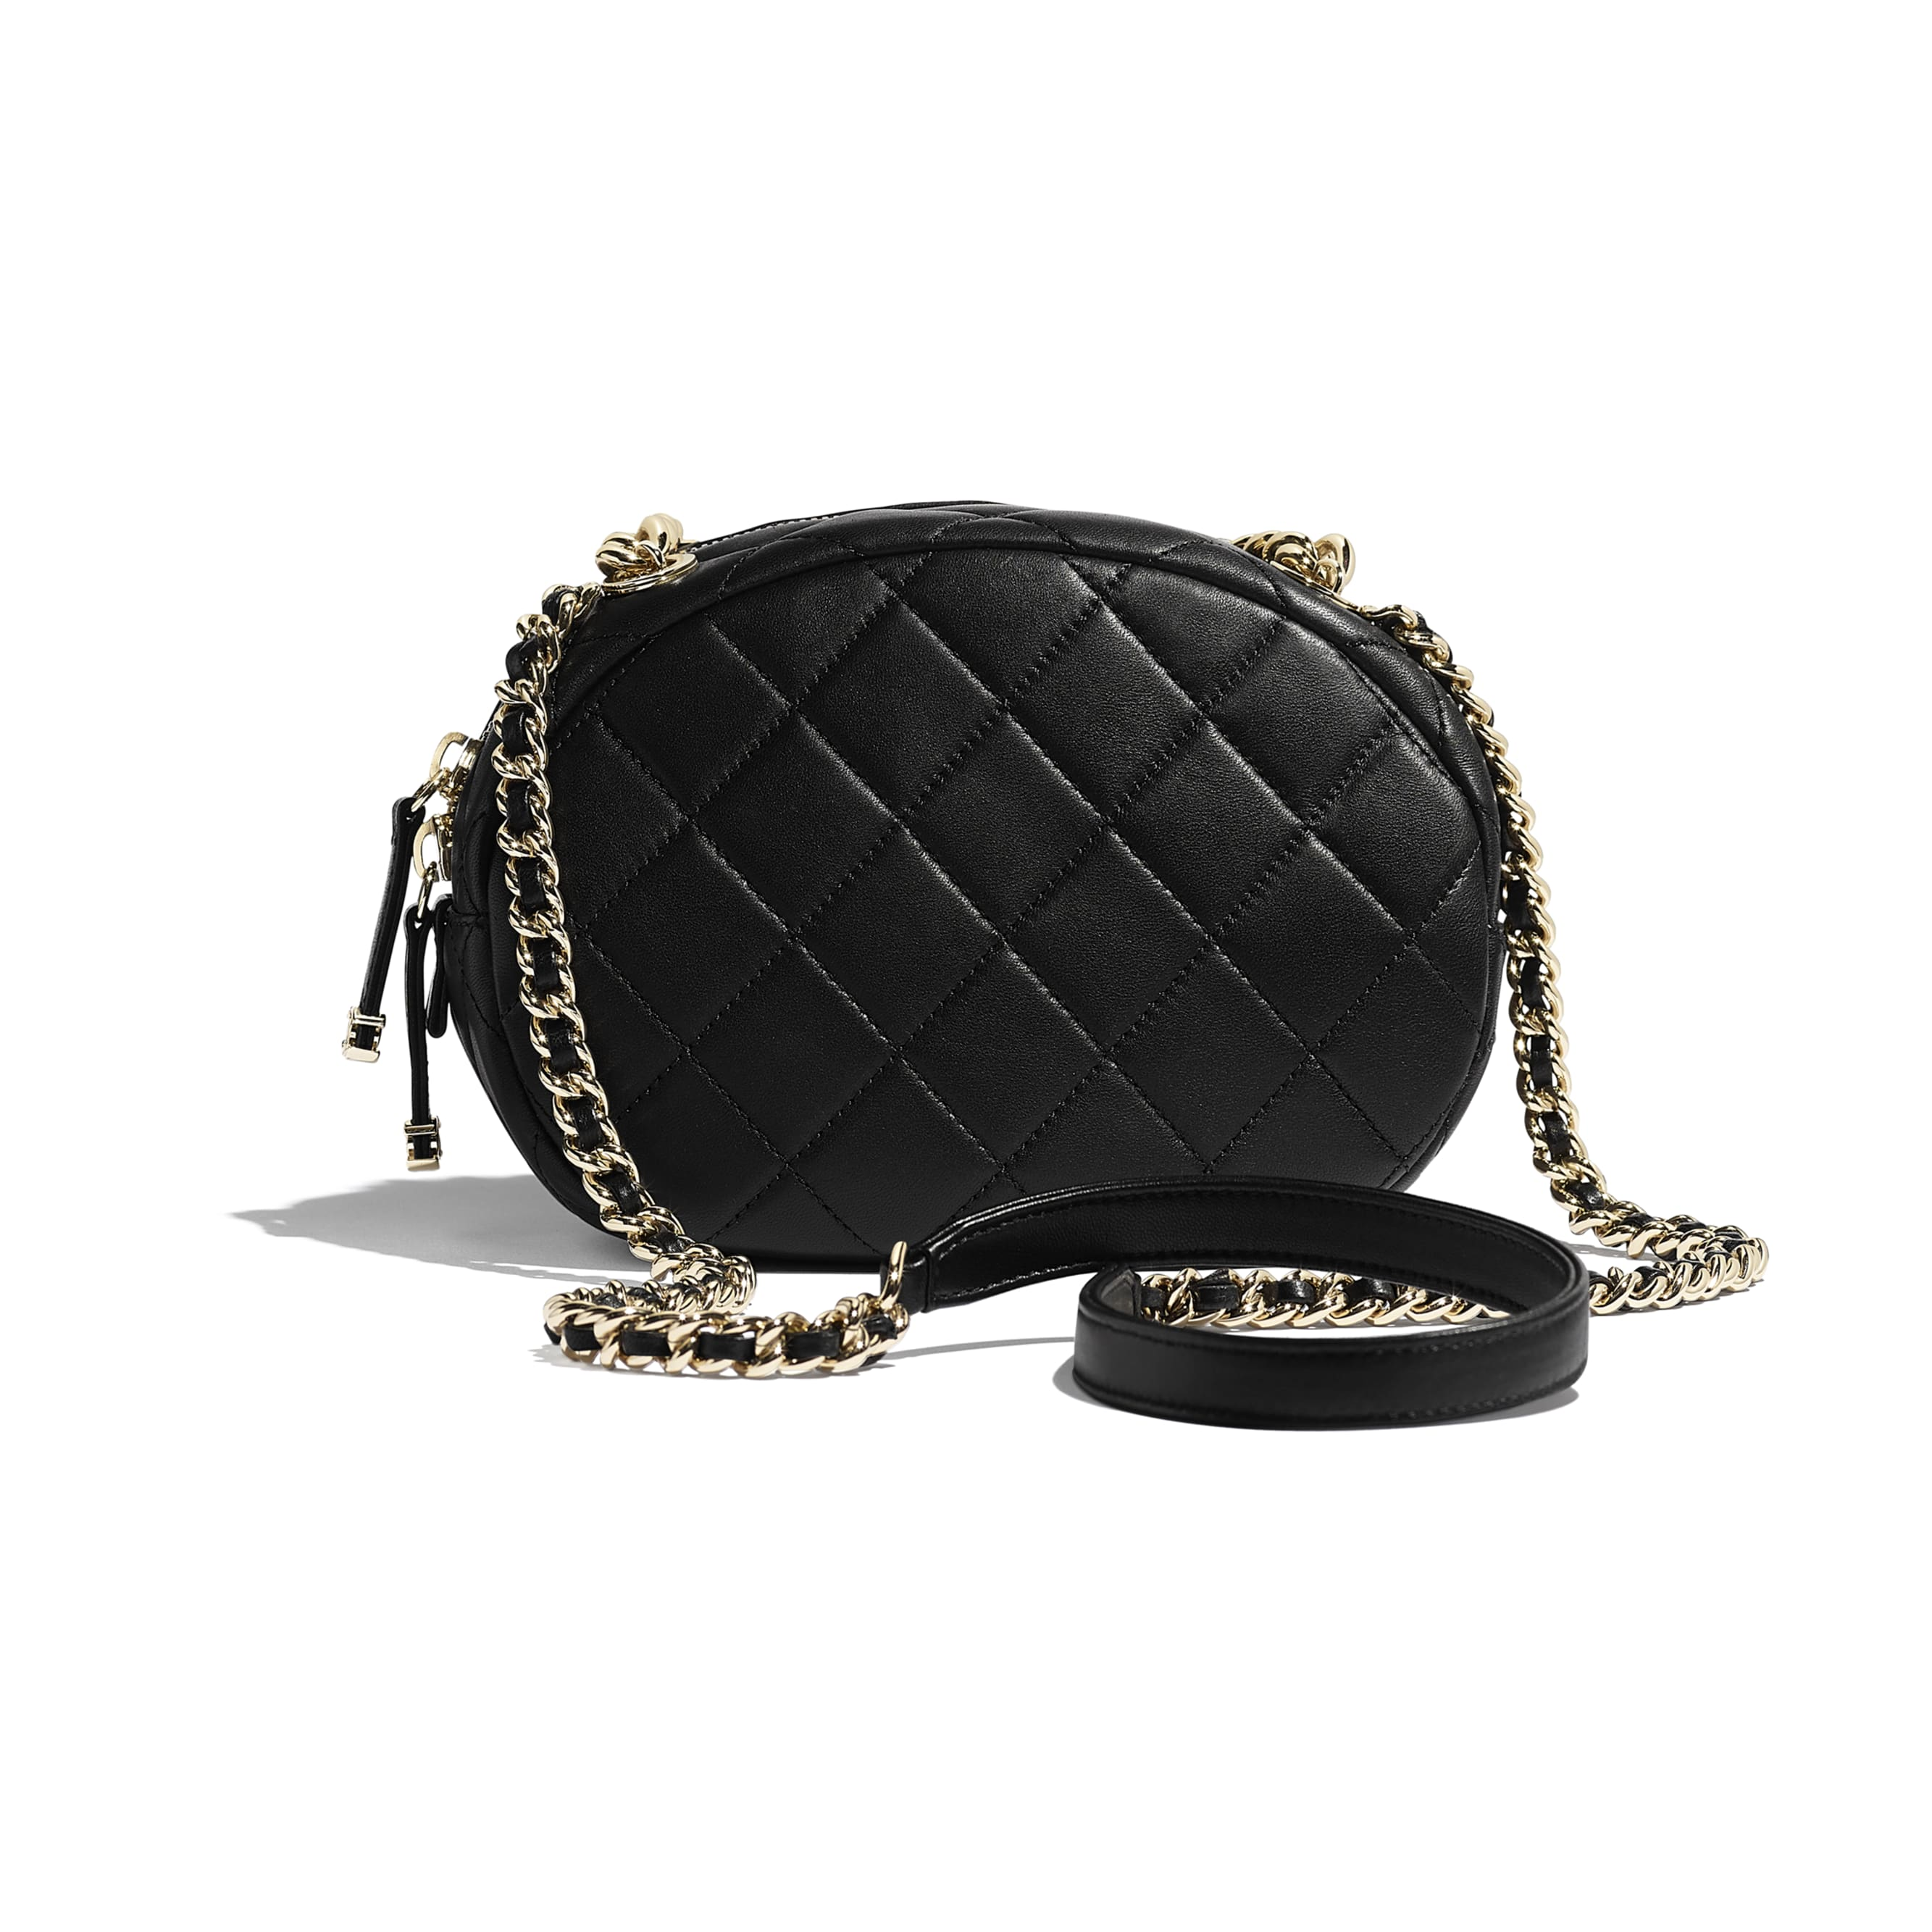 Camera Case - Black - Lambskin, Studs & Gold-Tone Metal - CHANEL - Alternative view - see standard sized version